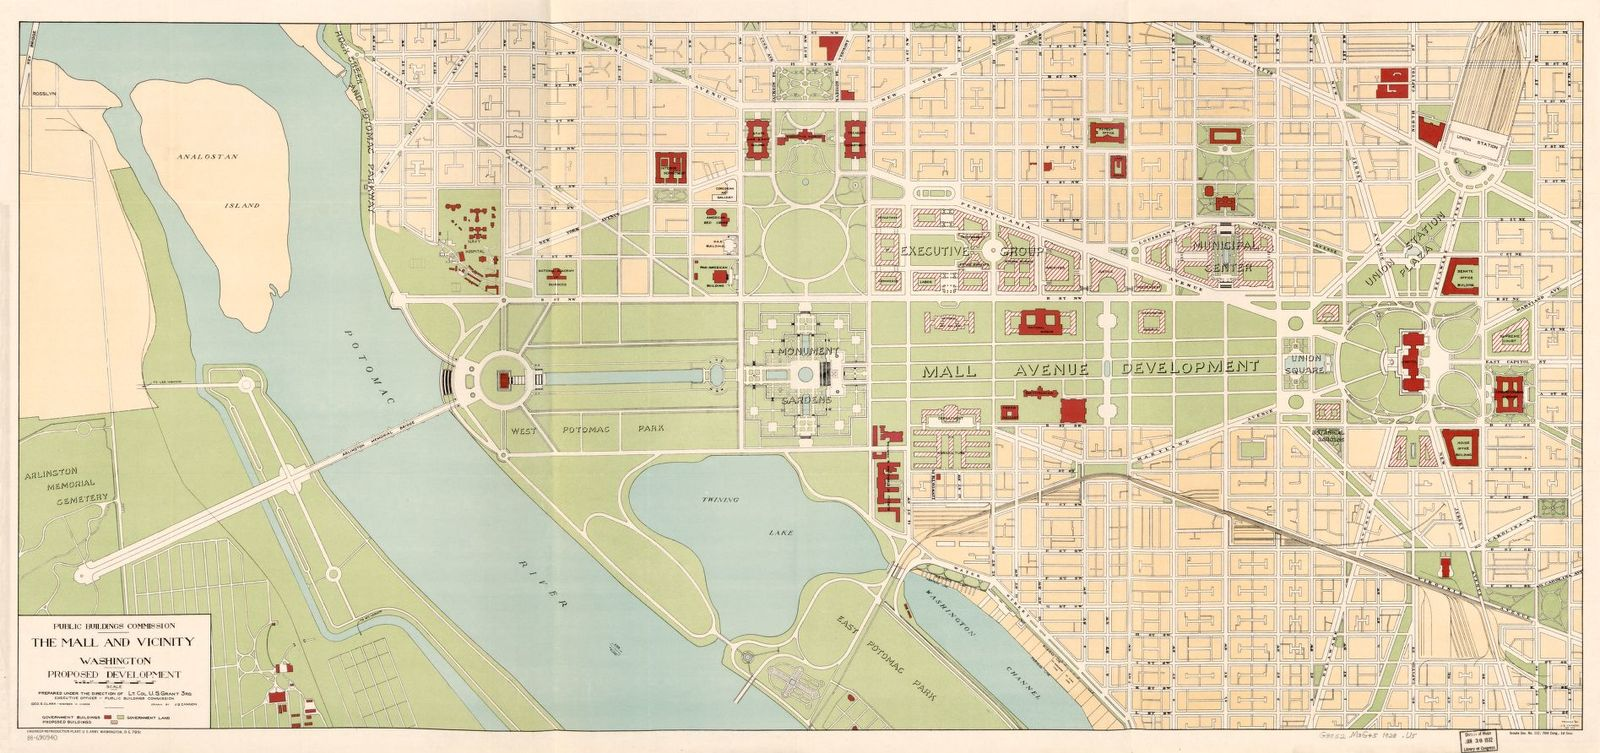 The Mall and vicinity, Washington, proposed development /